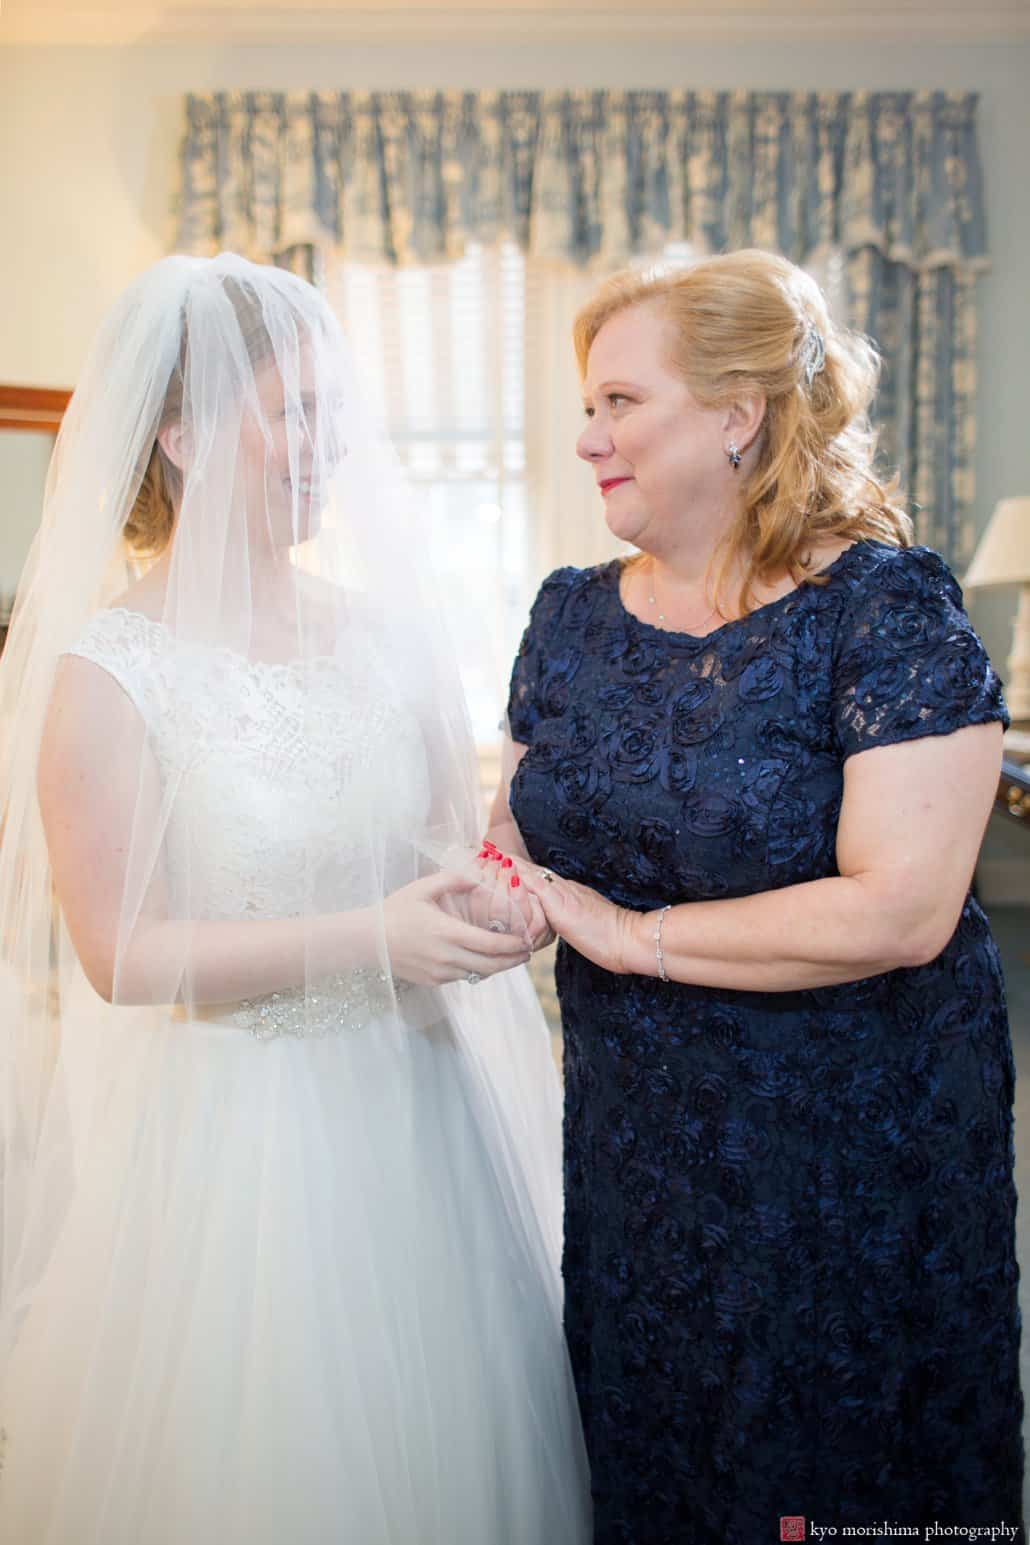 Bride and mother look into each other's eyes as they stand in the bridal suite at Bernards Inn in Bernardsville, NJ